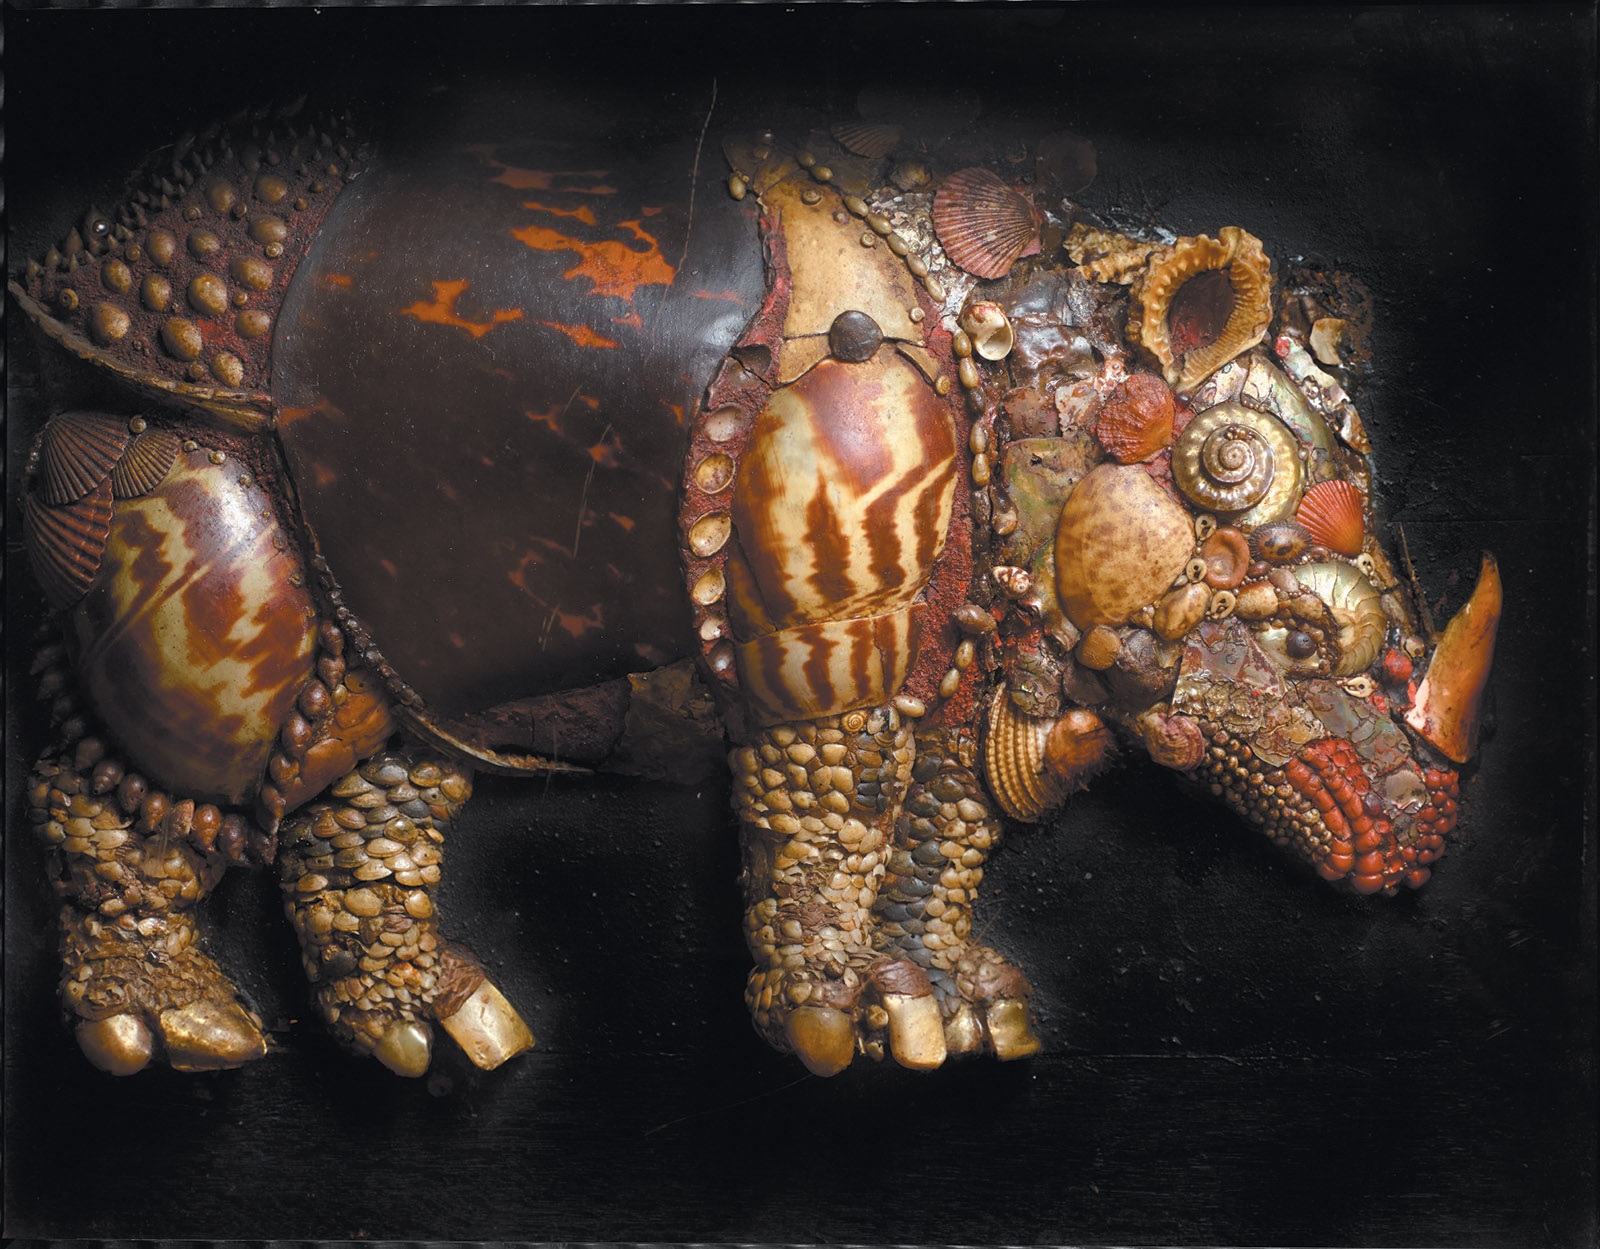 A rhinoceros made of tortoiseshell, coral, pearls, and seashells, based on a woodcut by Albrecht Dürer, early seventeenth century